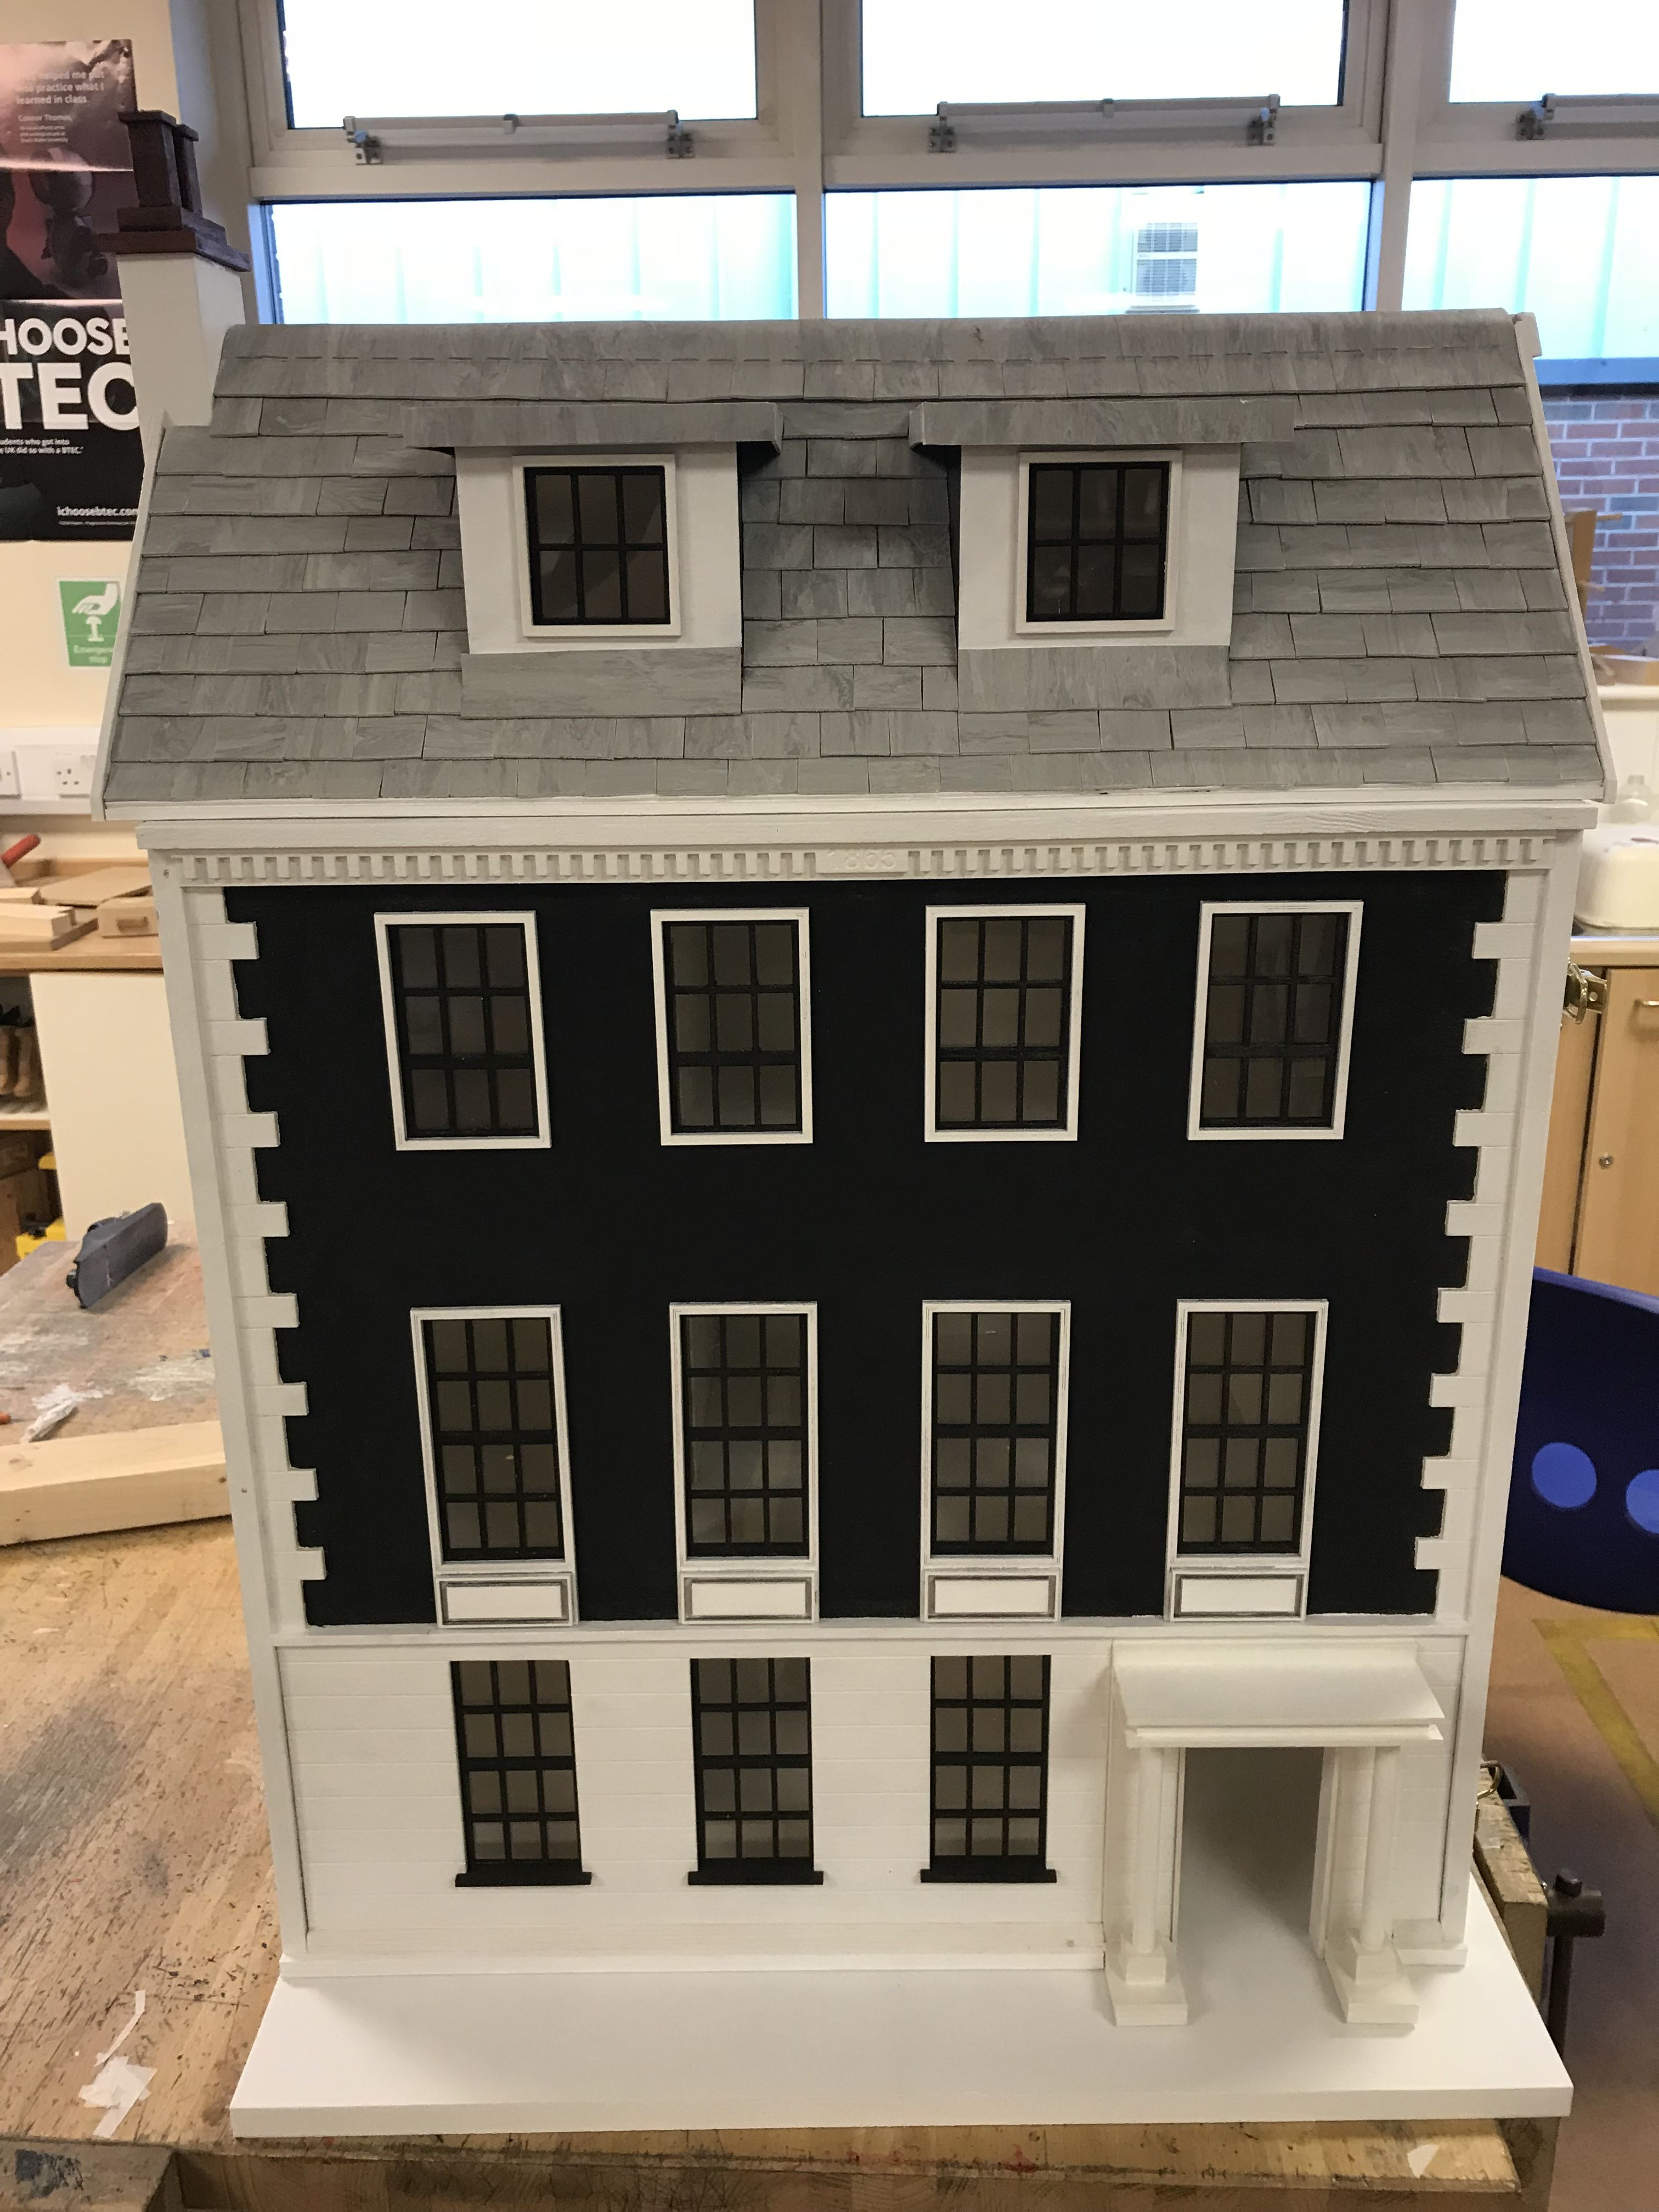 Pin By Rob On Diy Dolls House 1 16 Scale Diy Dollhouse Diy Doll Doll House